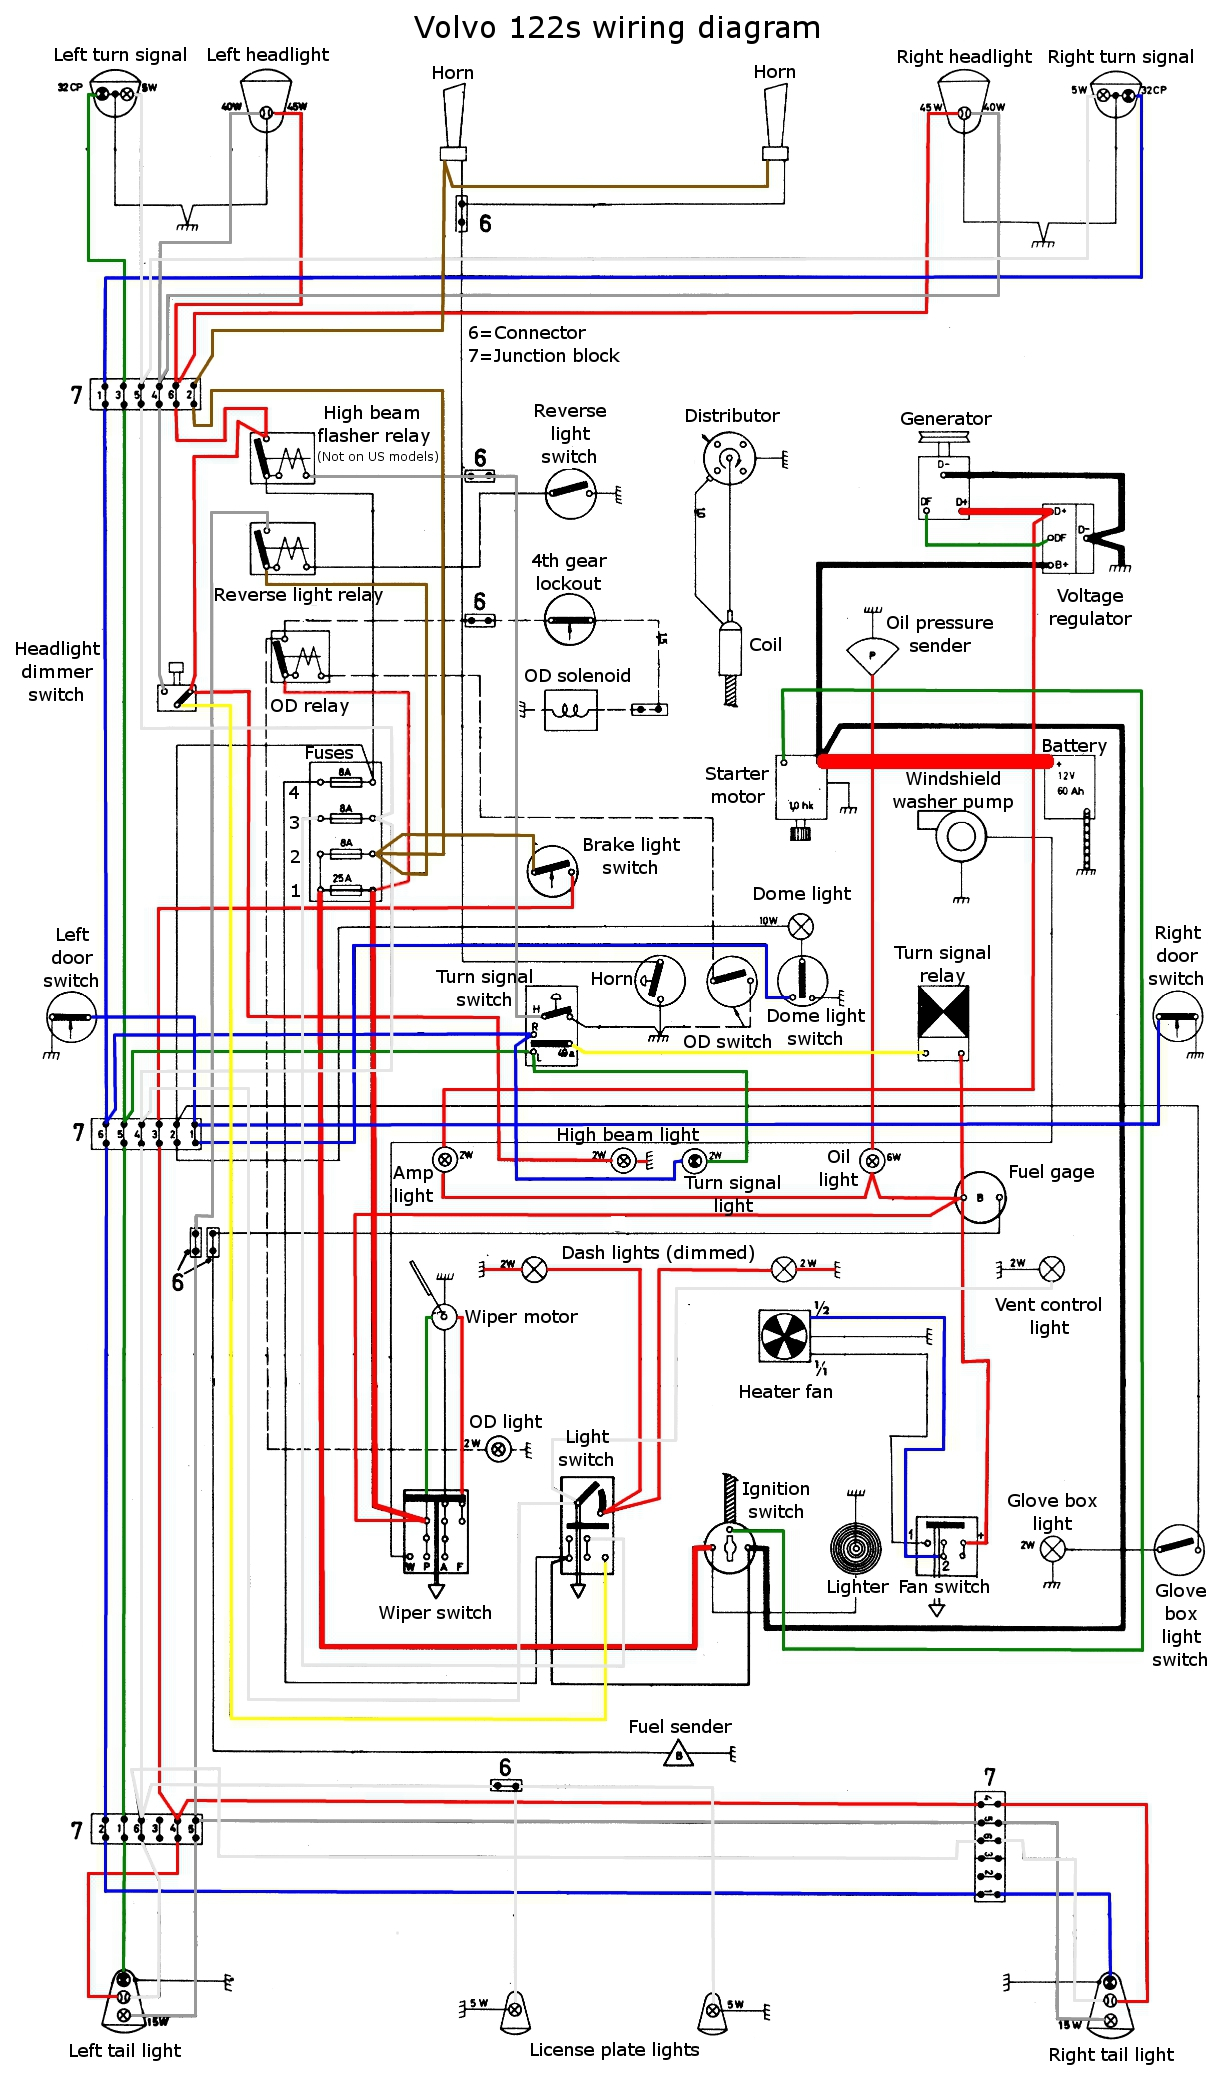 122 wiring diagram color wiring gremlins volvo xc70 wiring diagram at suagrazia.org